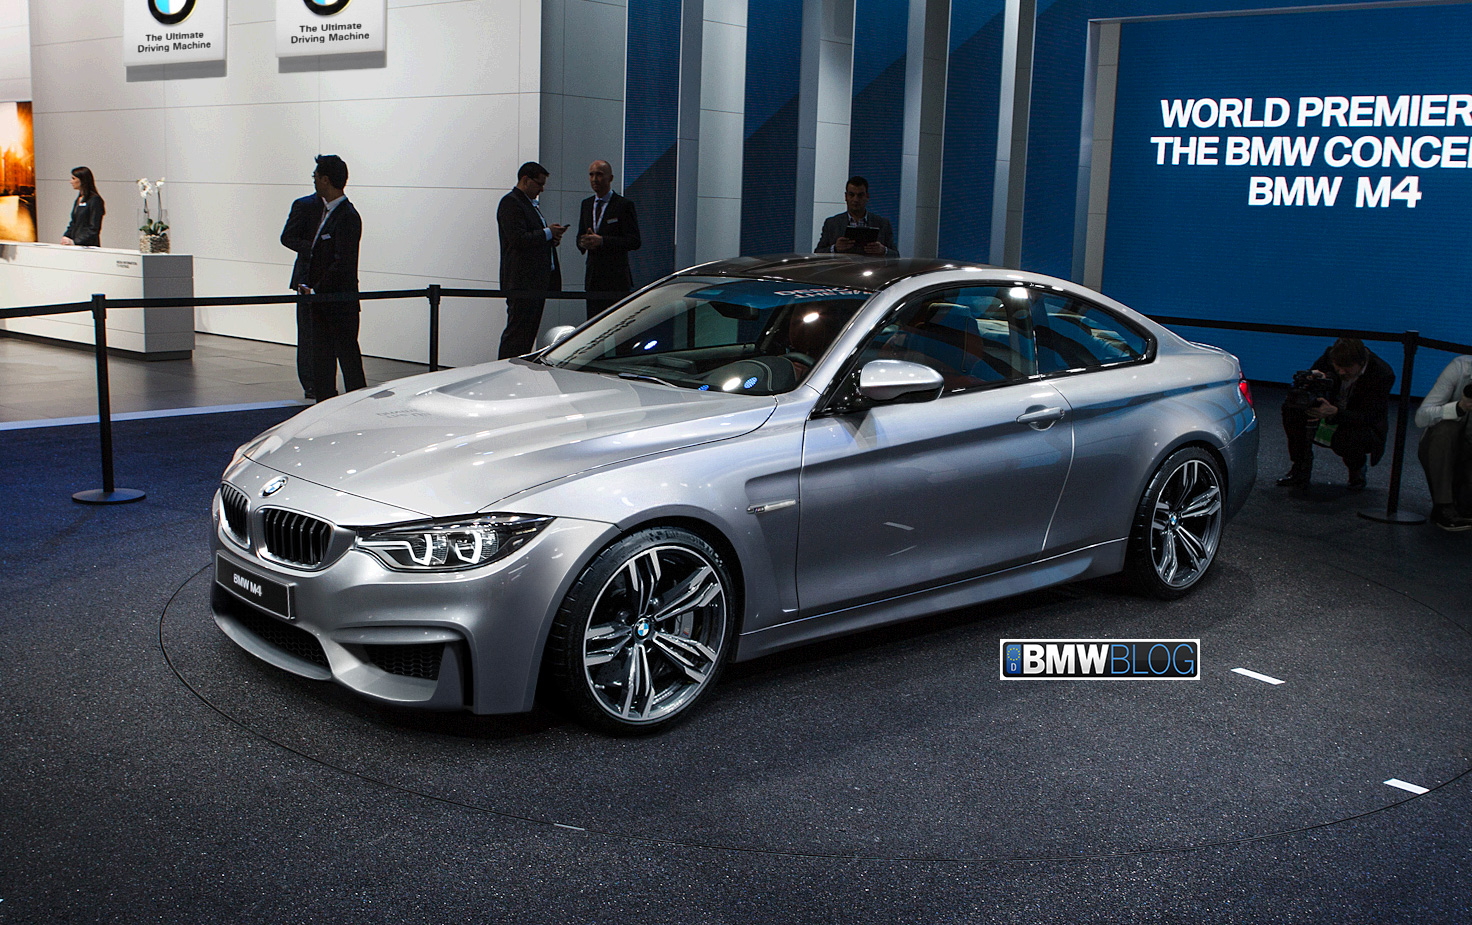 bmw m4 to focus on lighter weight rather than outright power